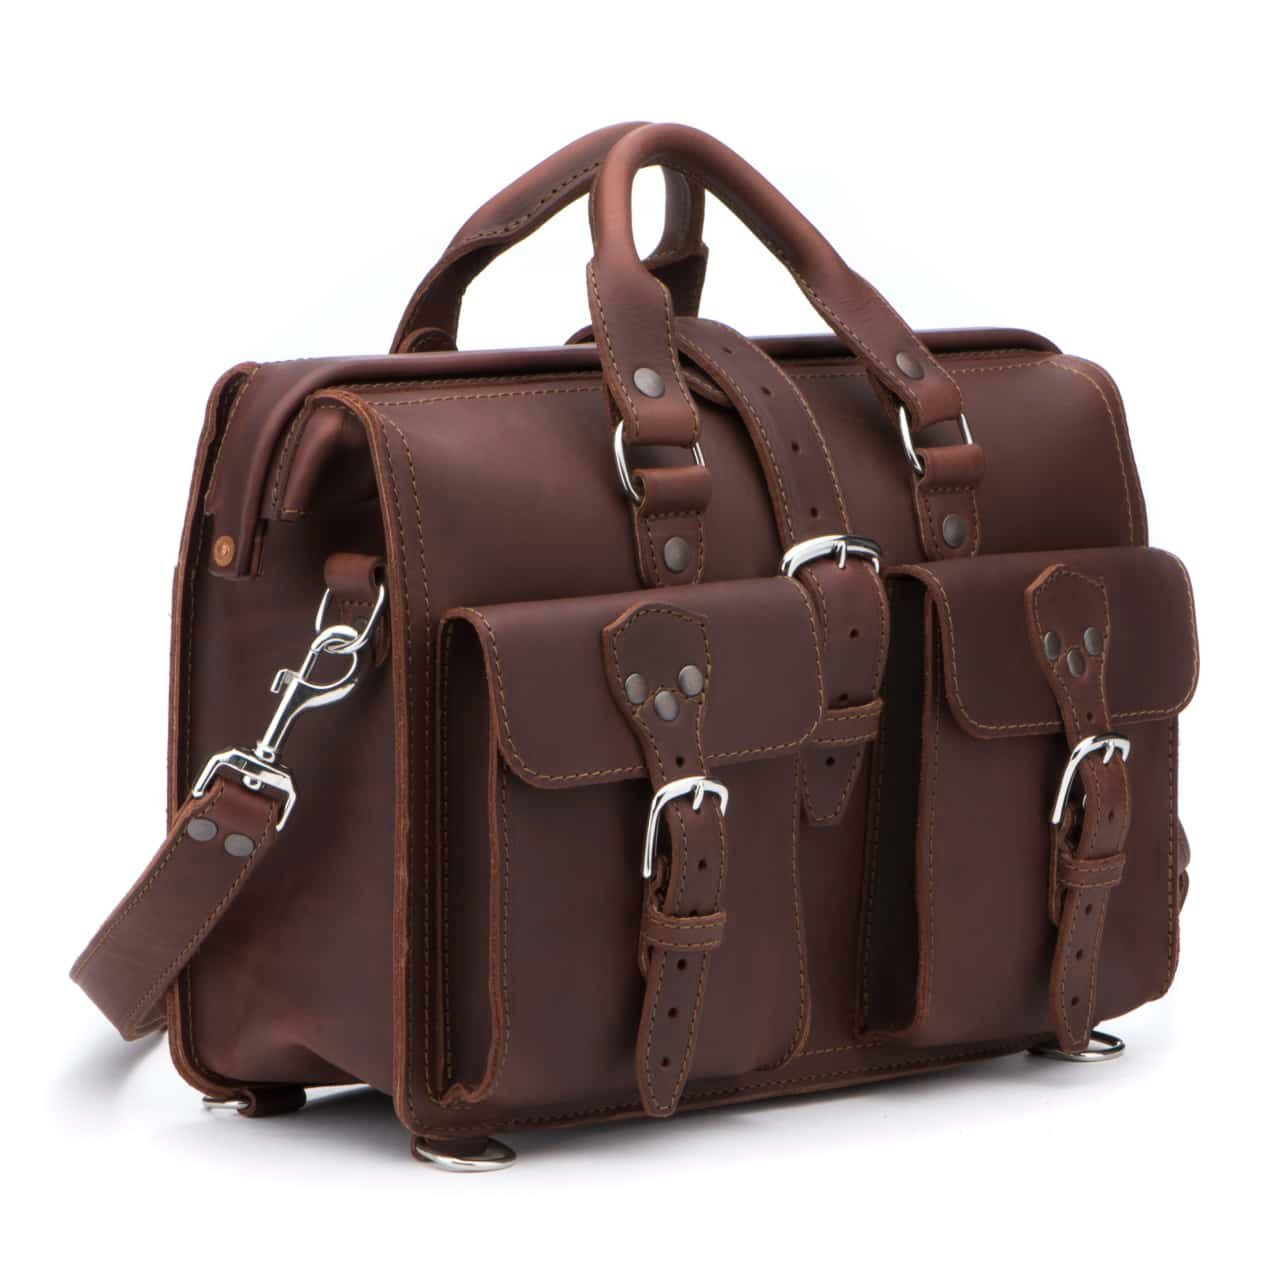 Saddleback Leather Co. Flight Bag 15-inch Full Grain Leather Expandable Laptop Briefcase for Men Includes 100 Year Warranty